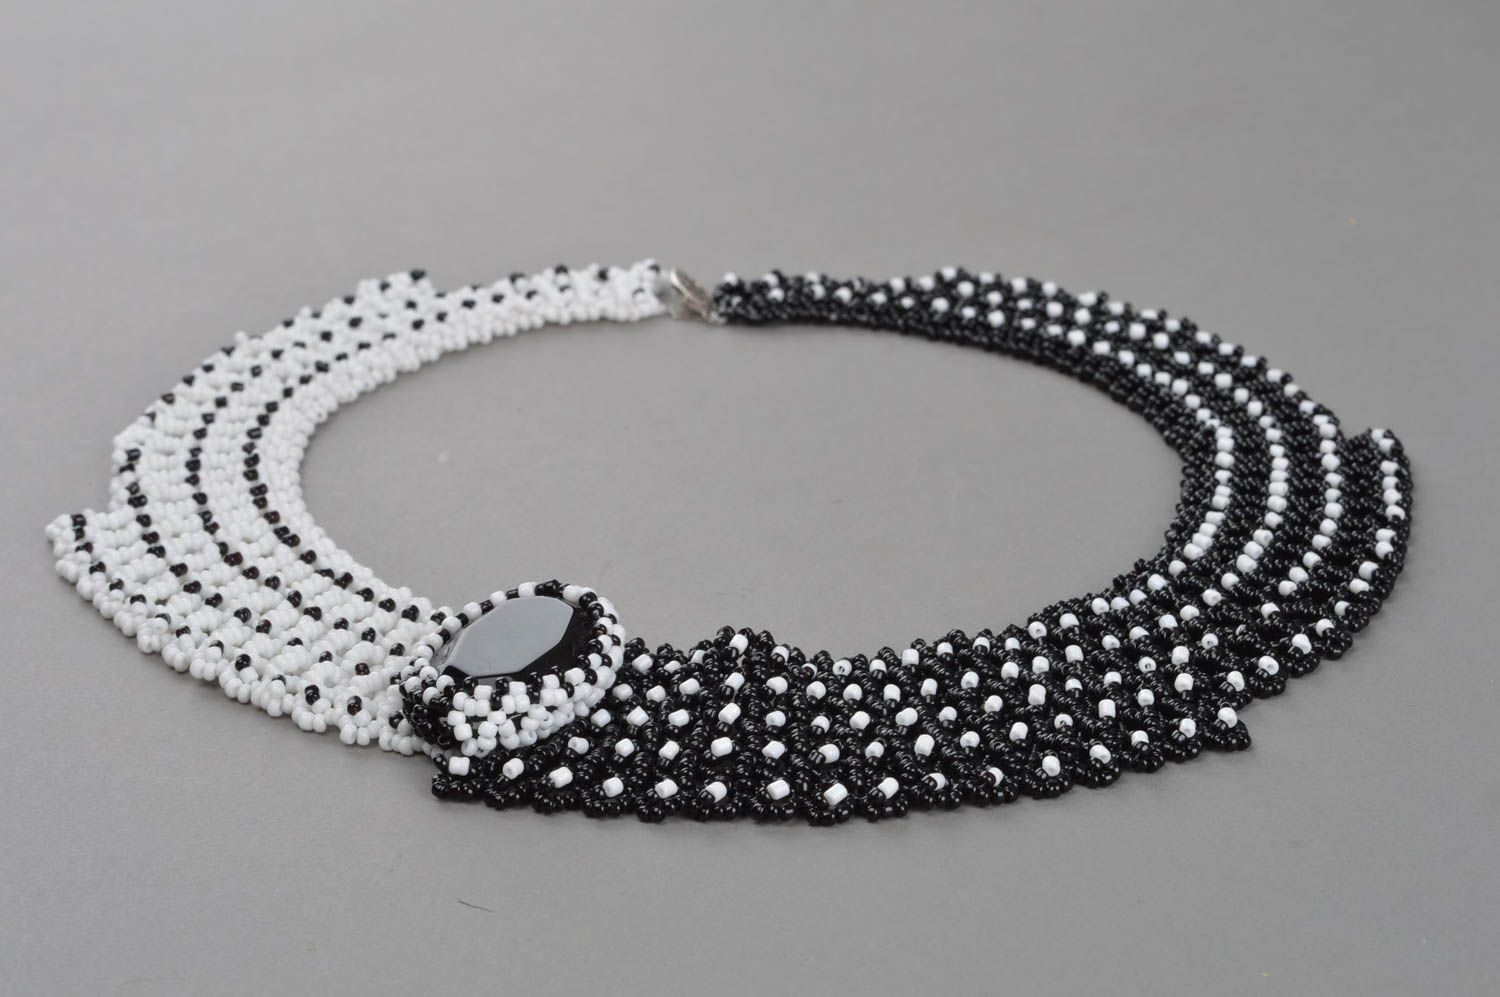 Black and white beaded necklace handmade accessory evening jewelry for women photo 2